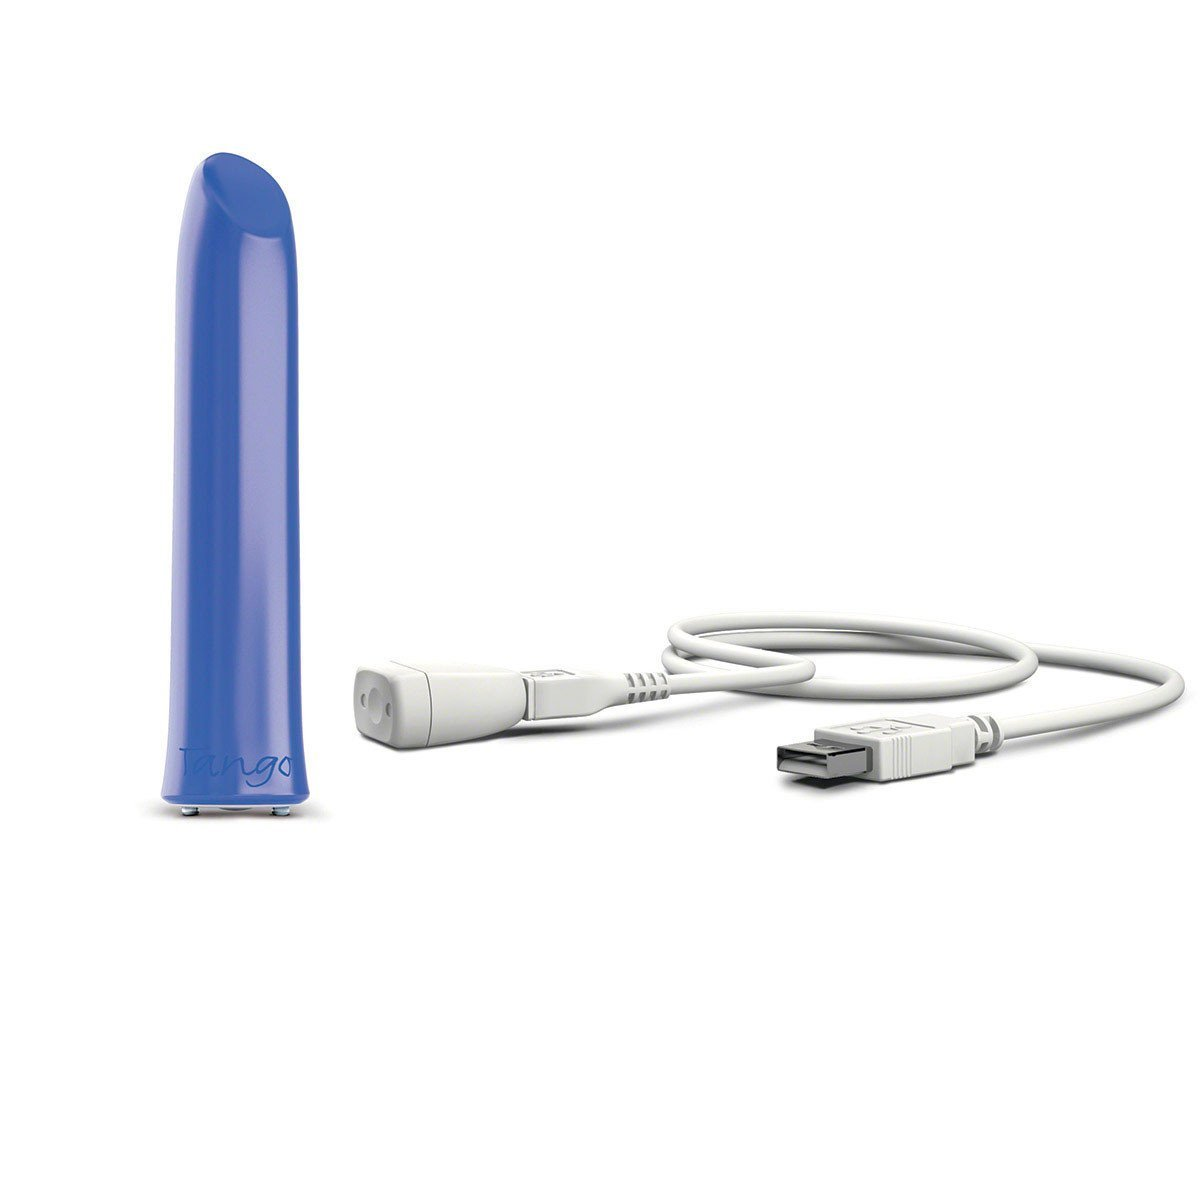 We-Vibe Tango USB Vibrator Bullet Vibrators We-Vibe